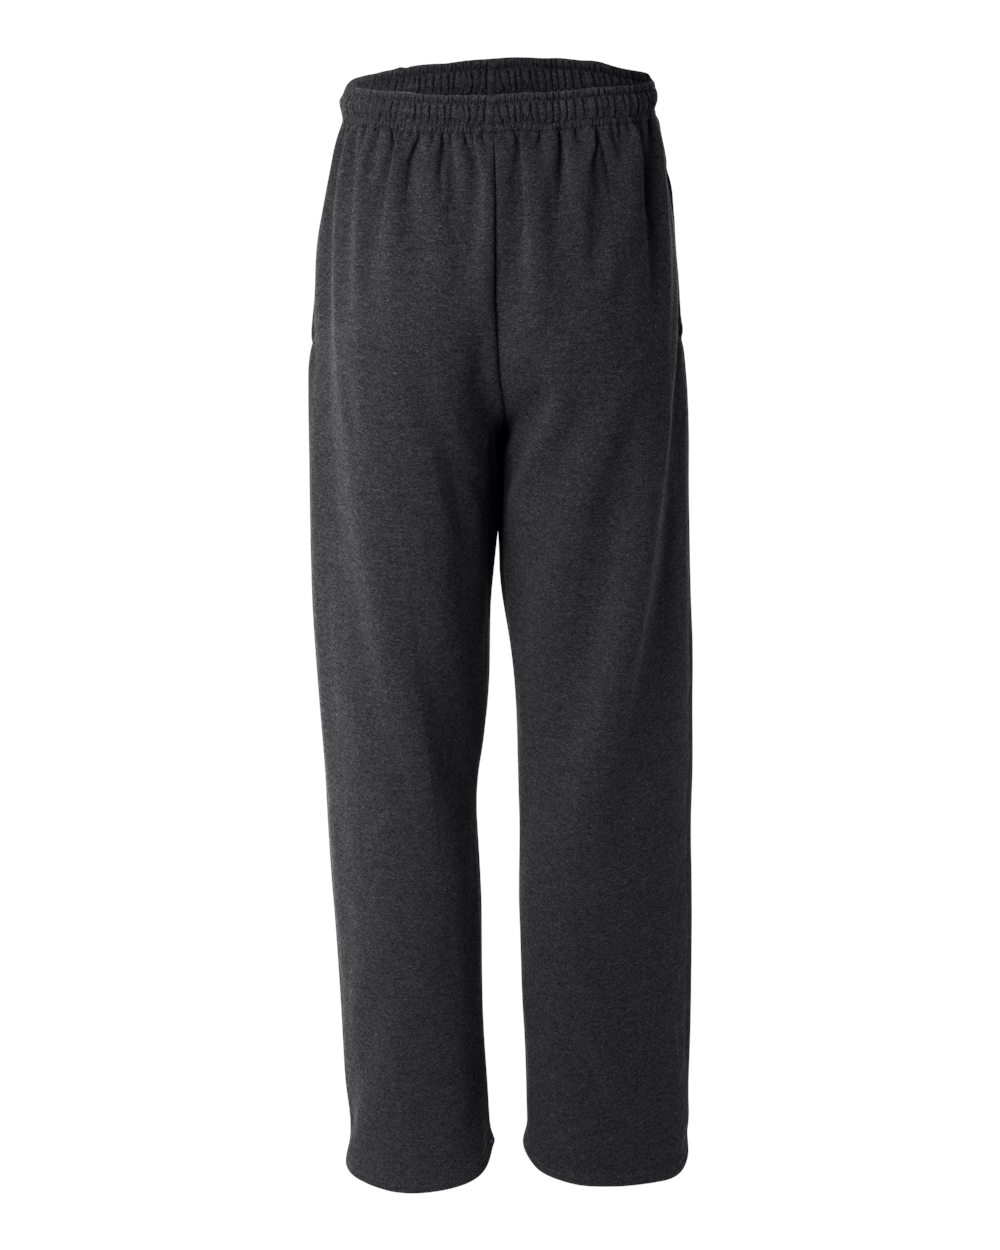 JERZEES-Mens-NuBlend-Open-Bottom-Sweatpants-with-Pockets-974MPR-up-to-3XL thumbnail 13